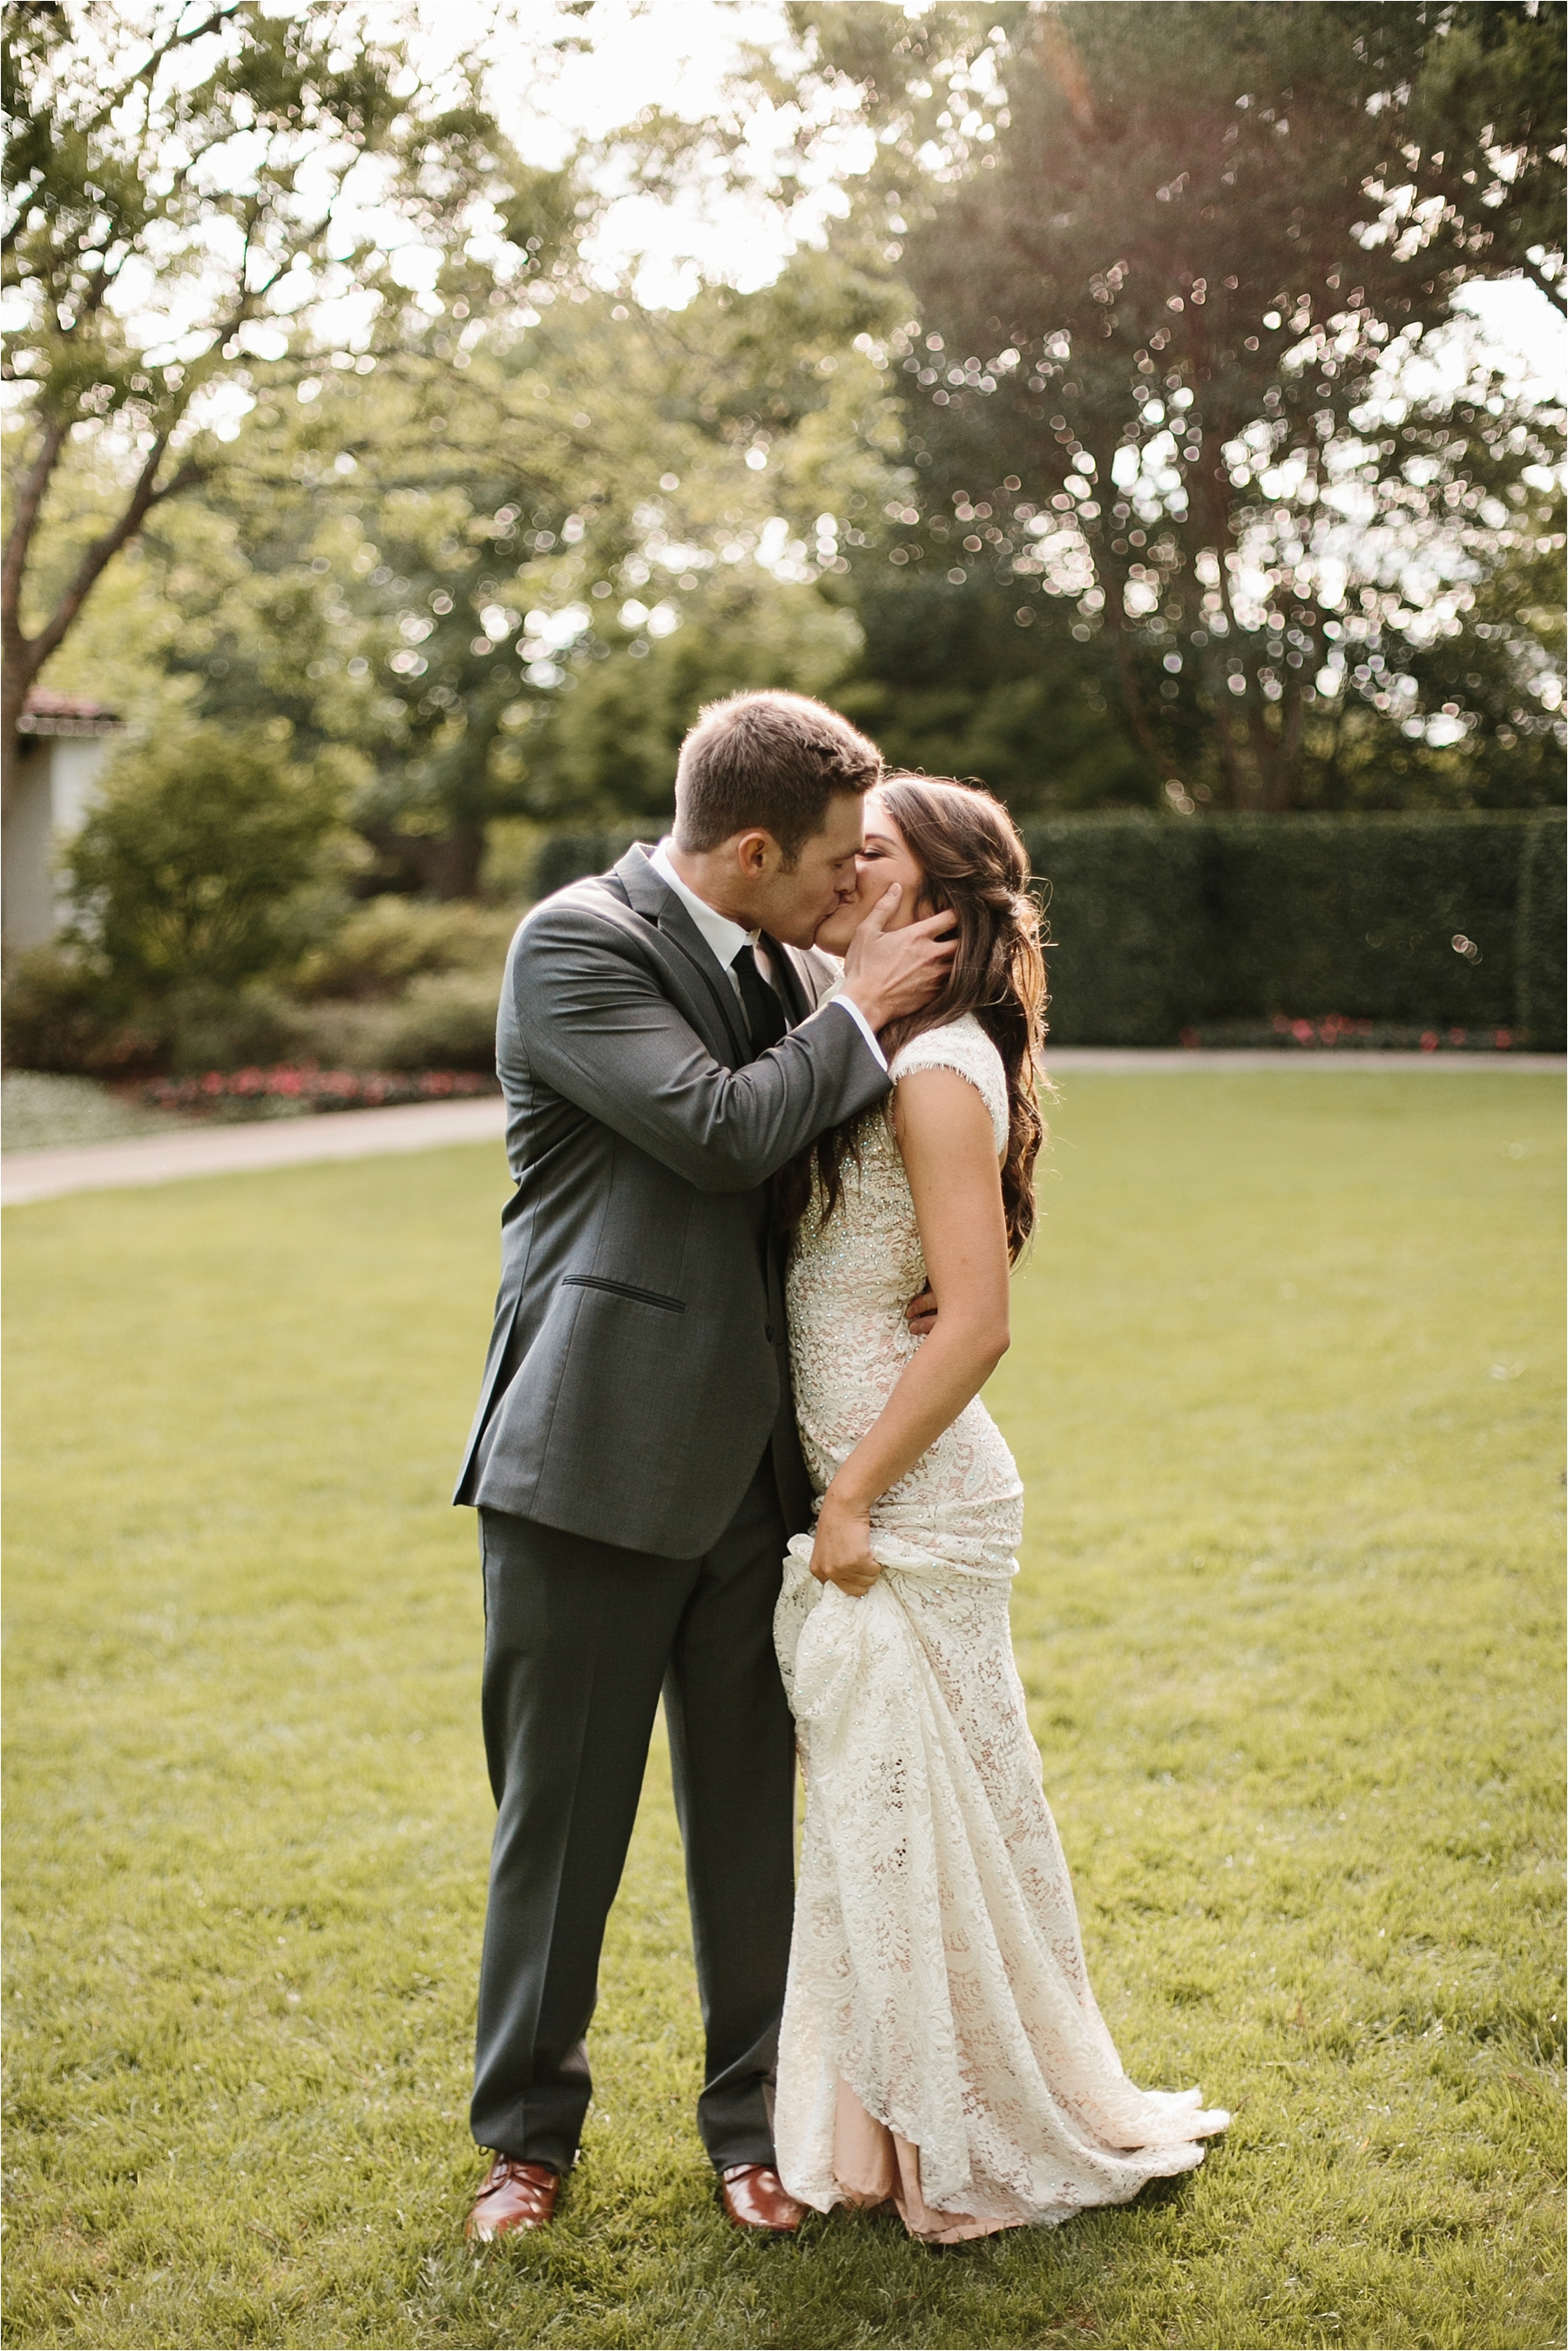 Devyn + Caden __ a Dallas Arboretum Garden Style Wedding by North Texas Wedding Photographer Rachel Meagan Photography __ 083